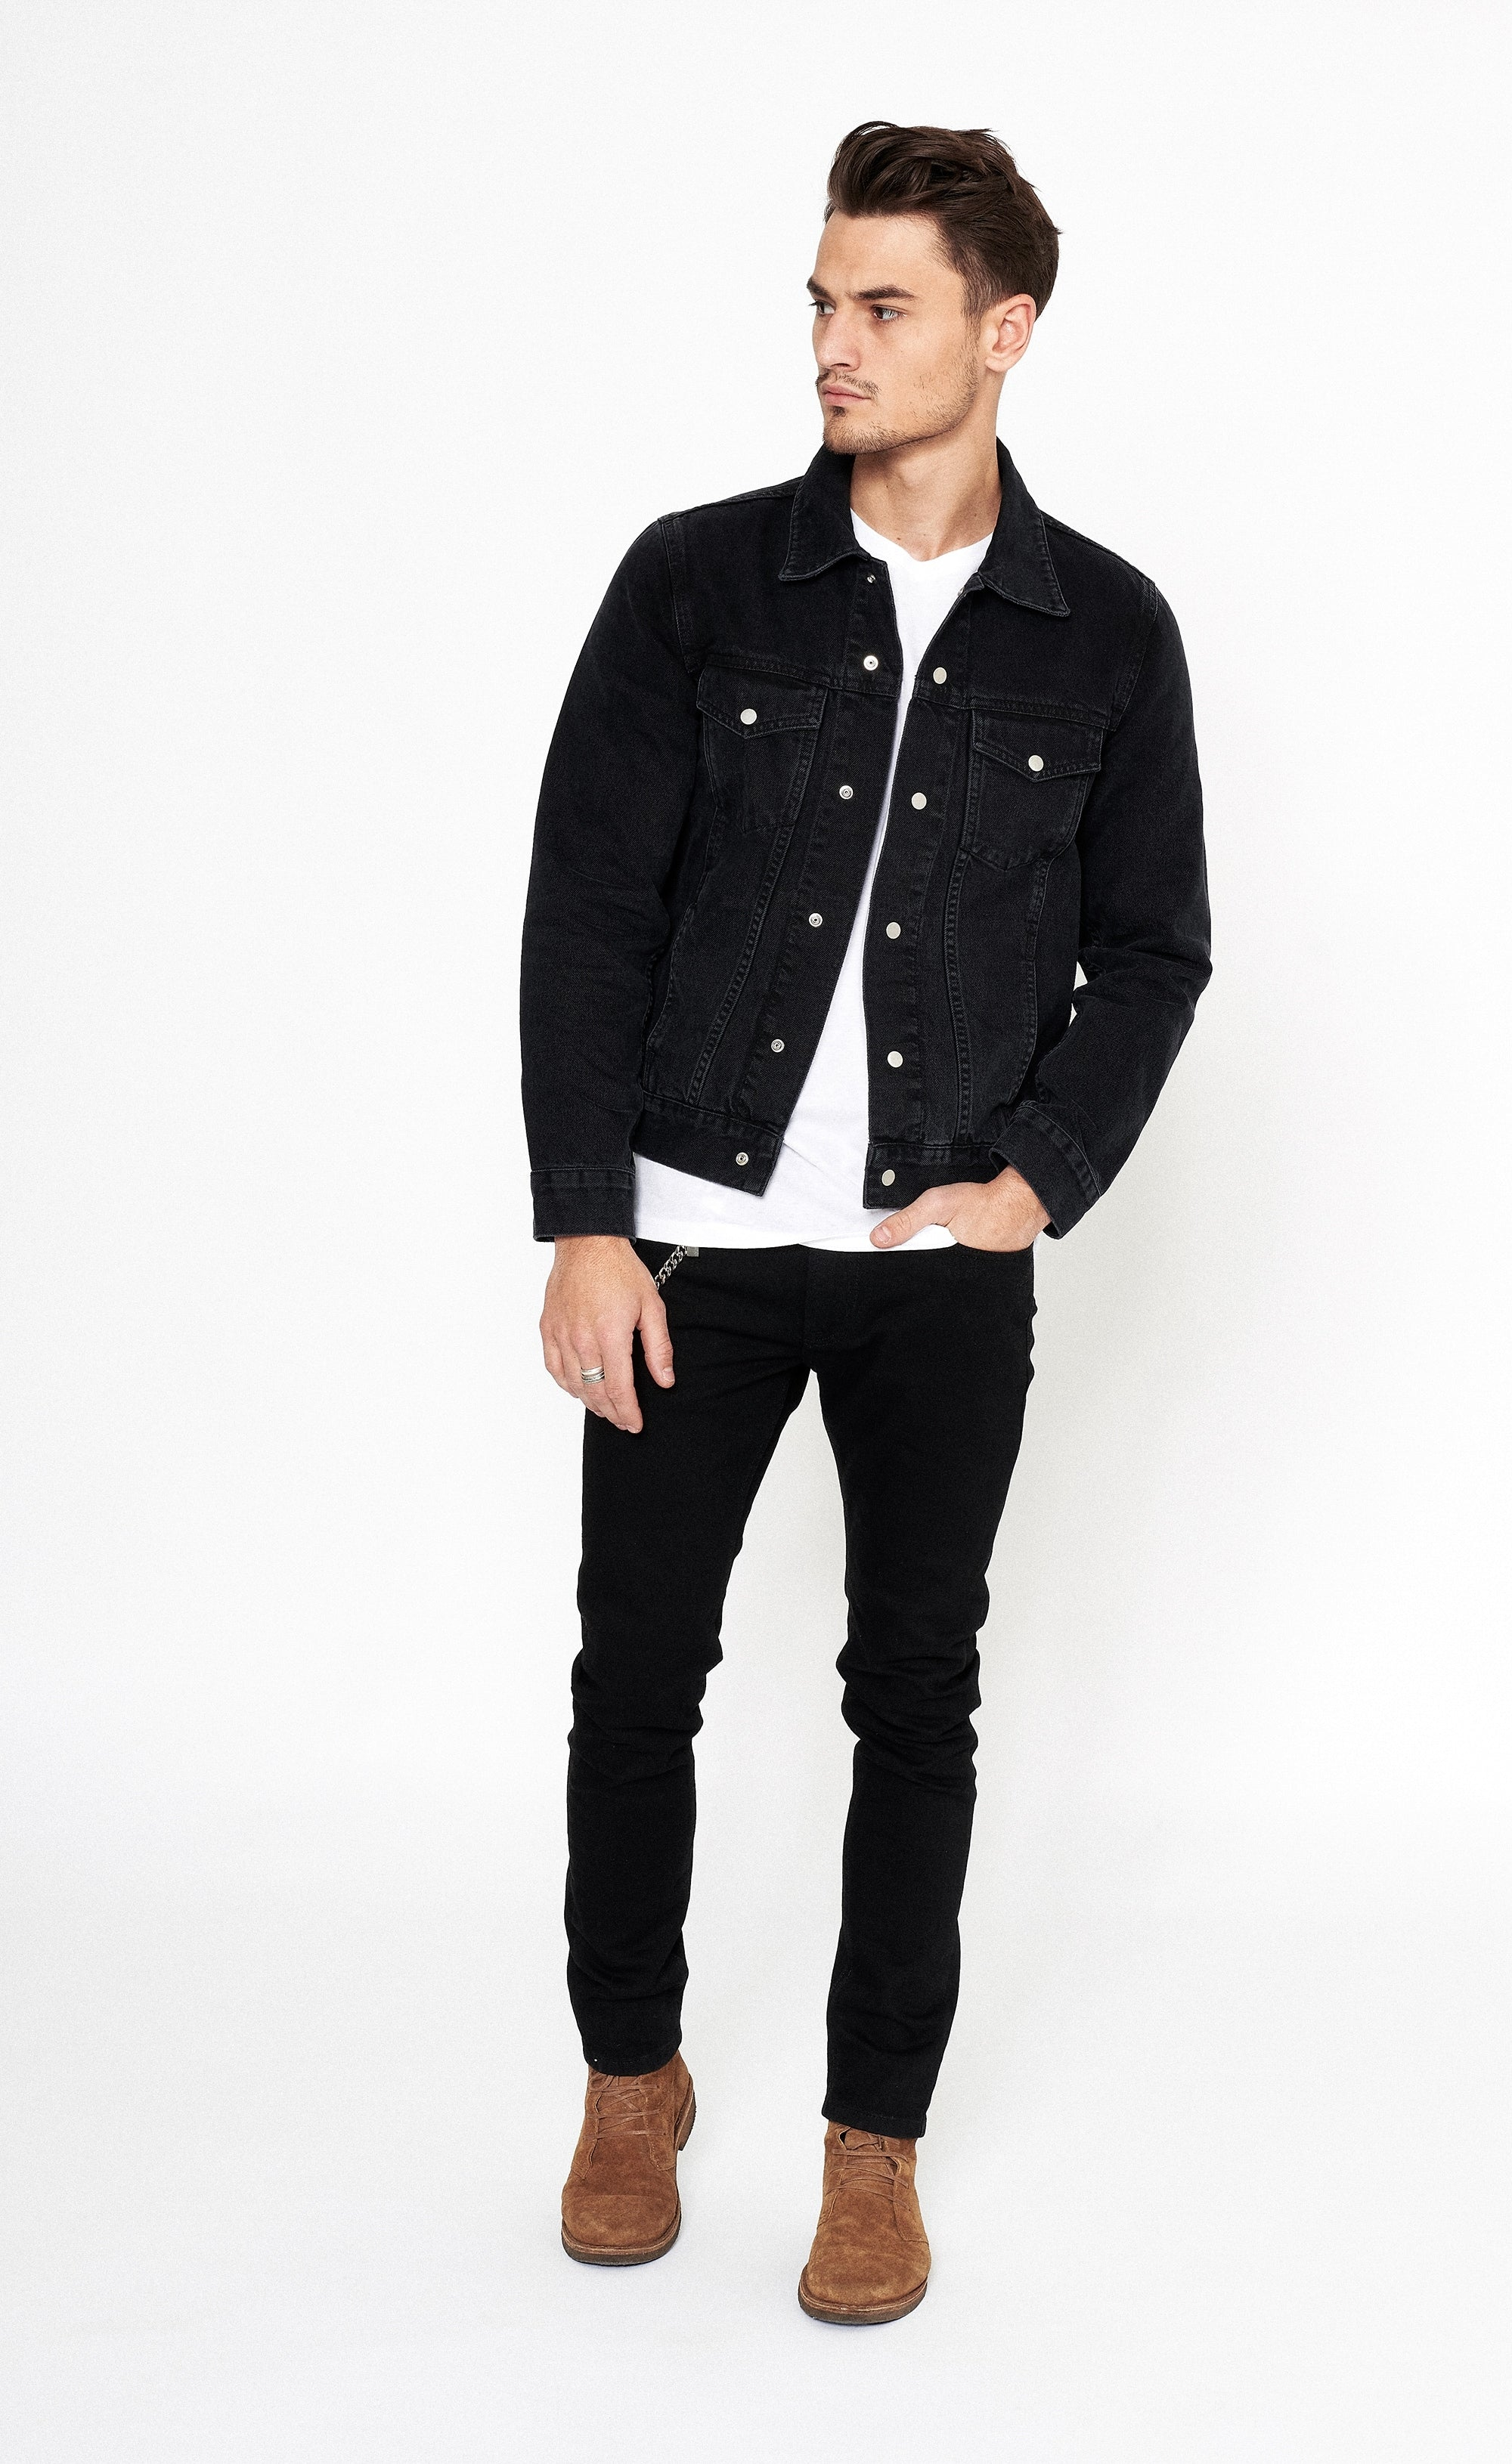 CLASSIC DENIM JACKET - BLACK - Forage-Clothing